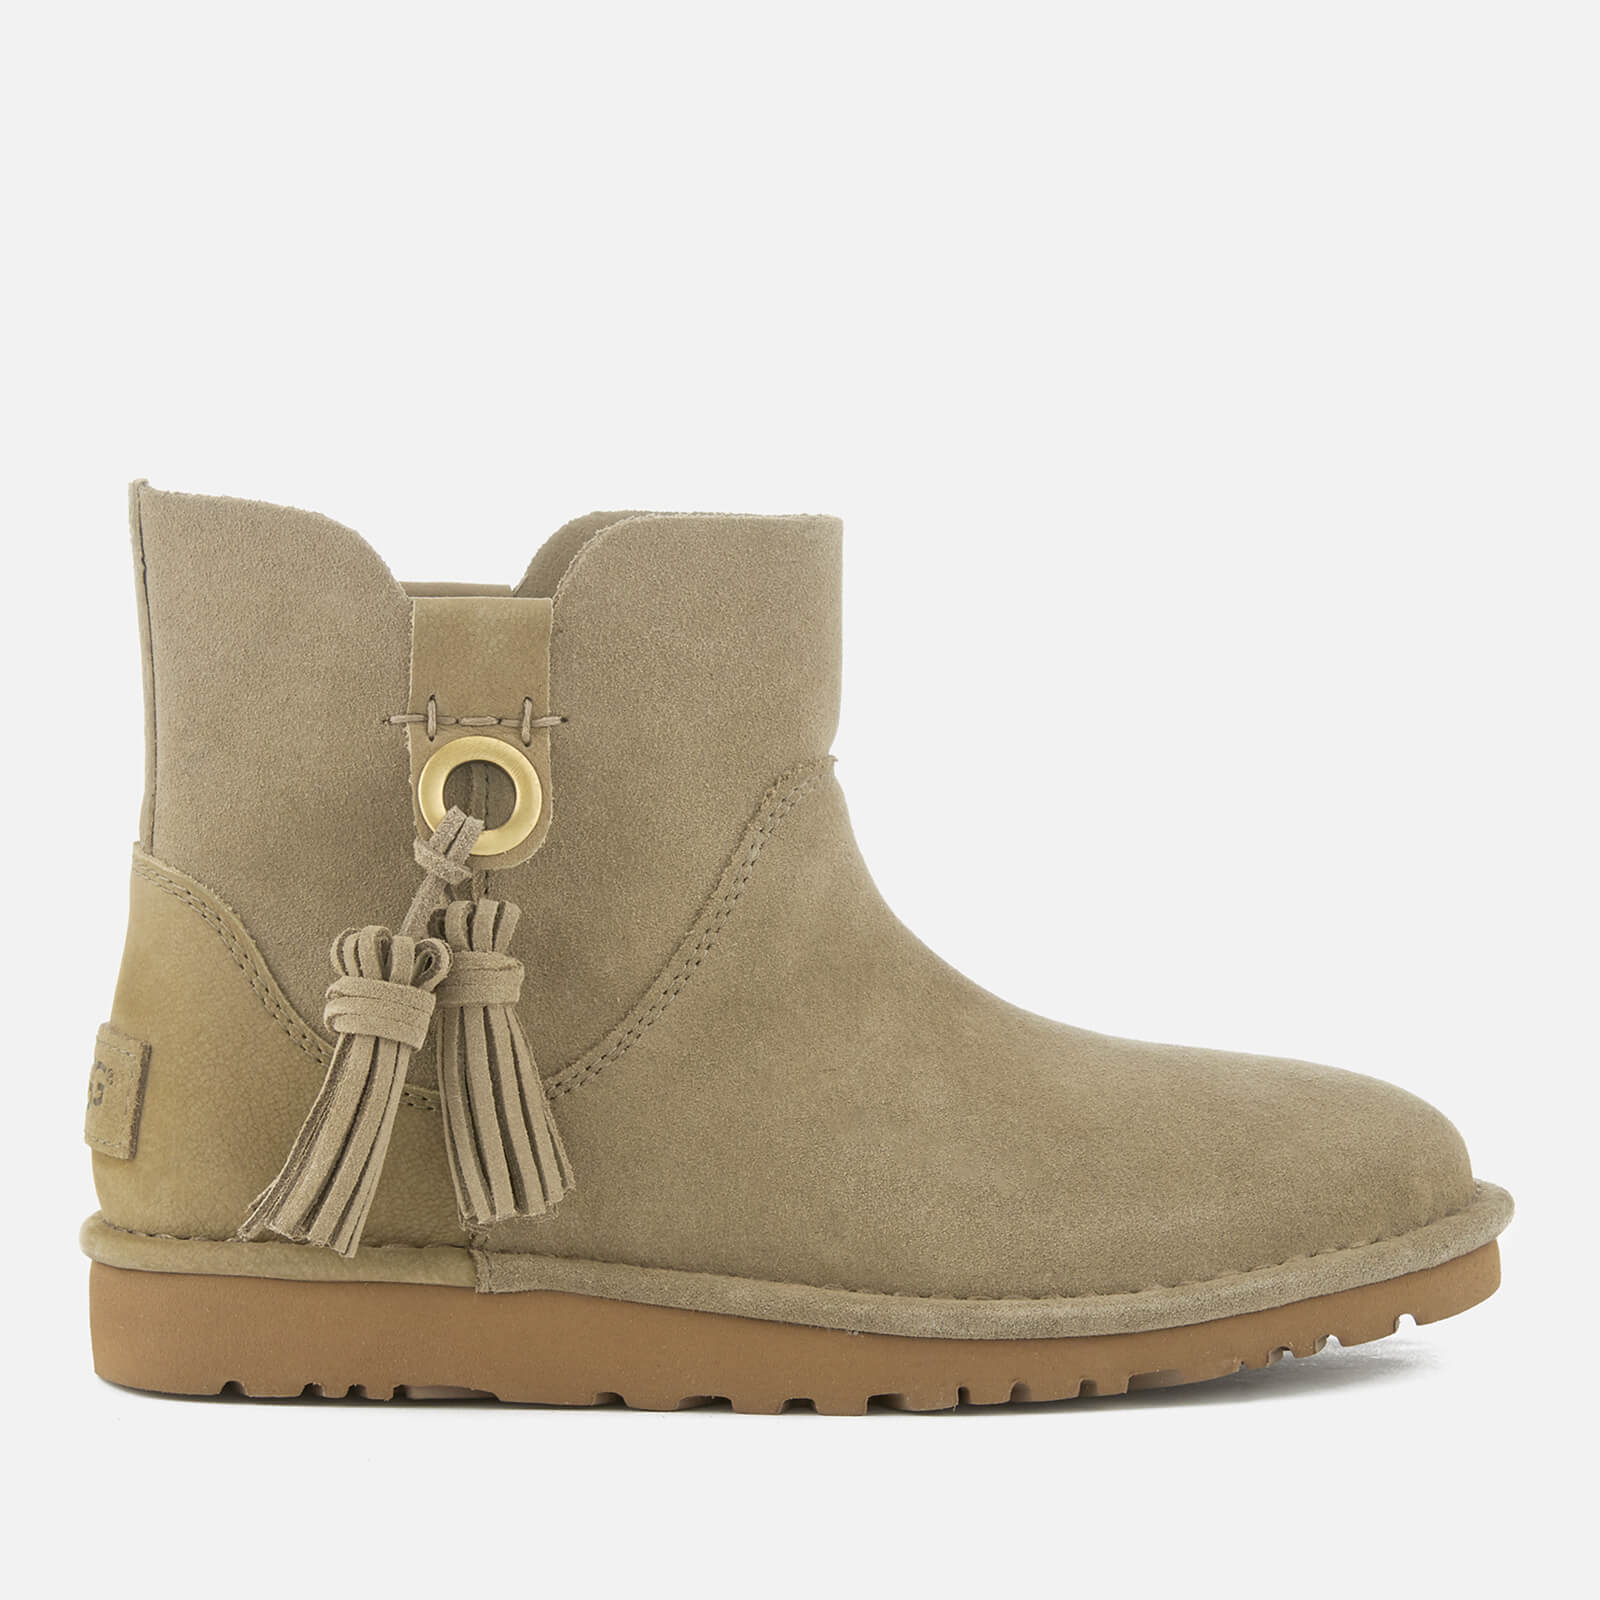 991694d565a UGG Women's Gib Suede Unlined Ankle Boots - Antelope